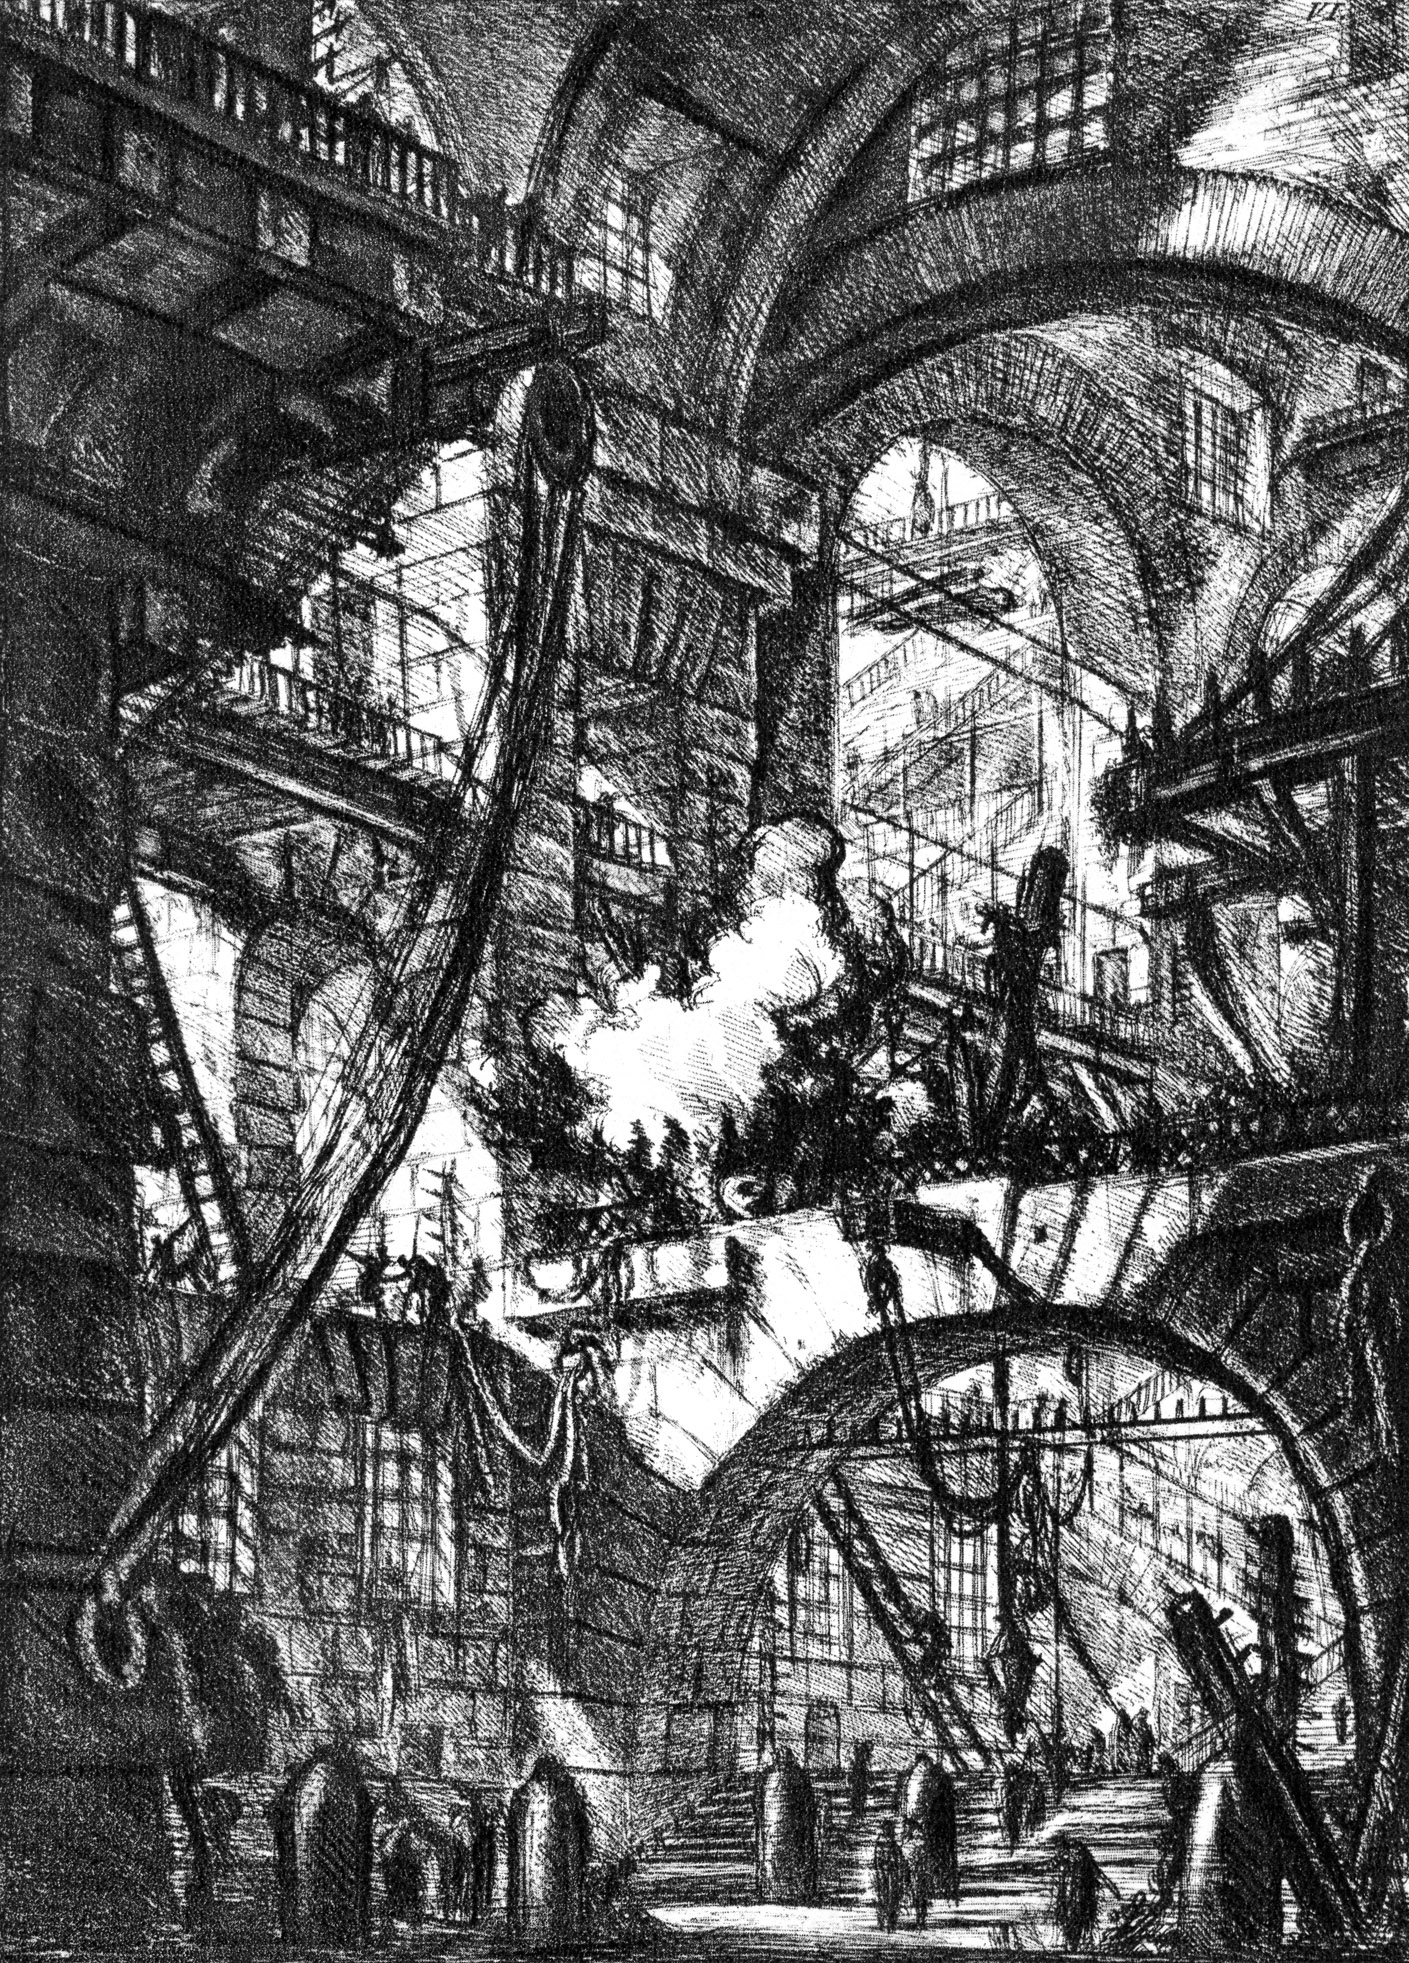 Piranesi's Carceri Plate VI: The Smoking Fire